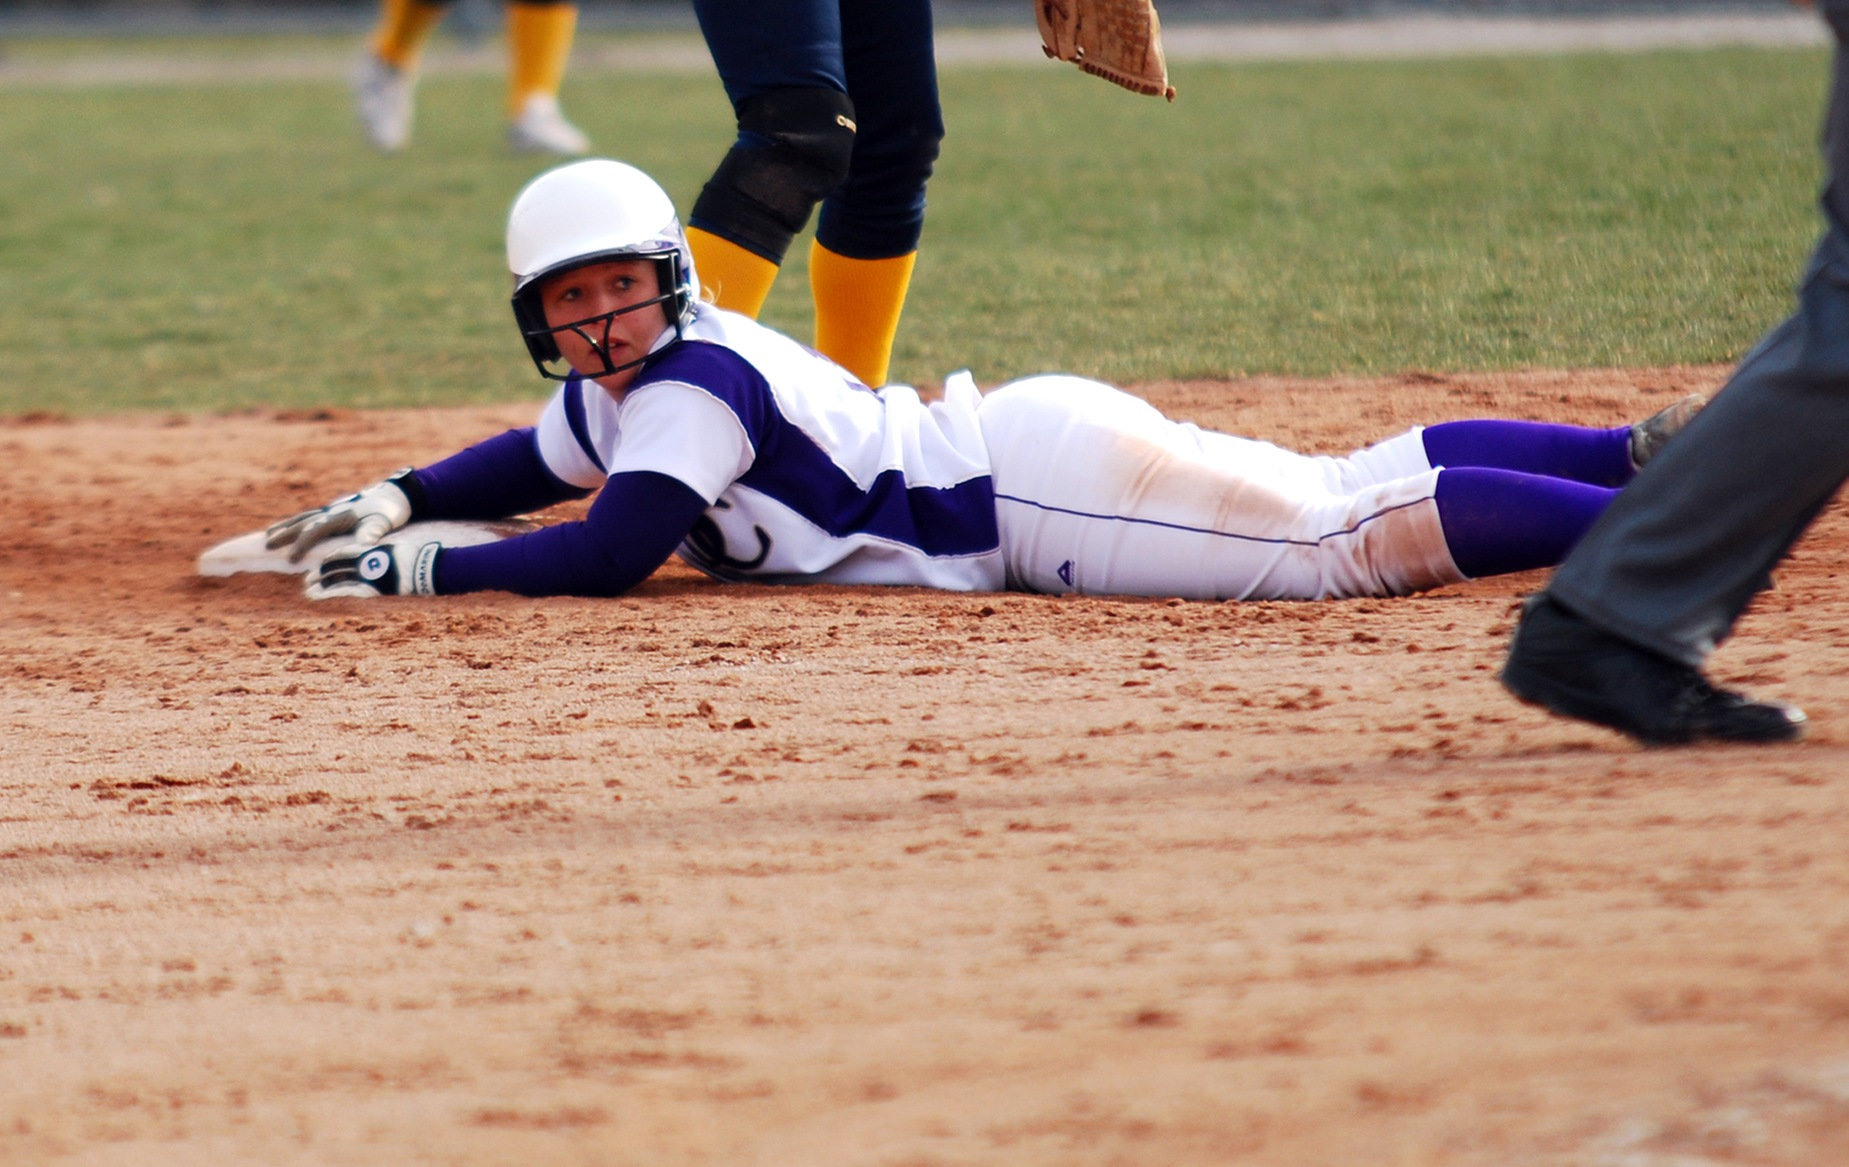 DC Softball Falls to Anderson in HCAC Championship Game